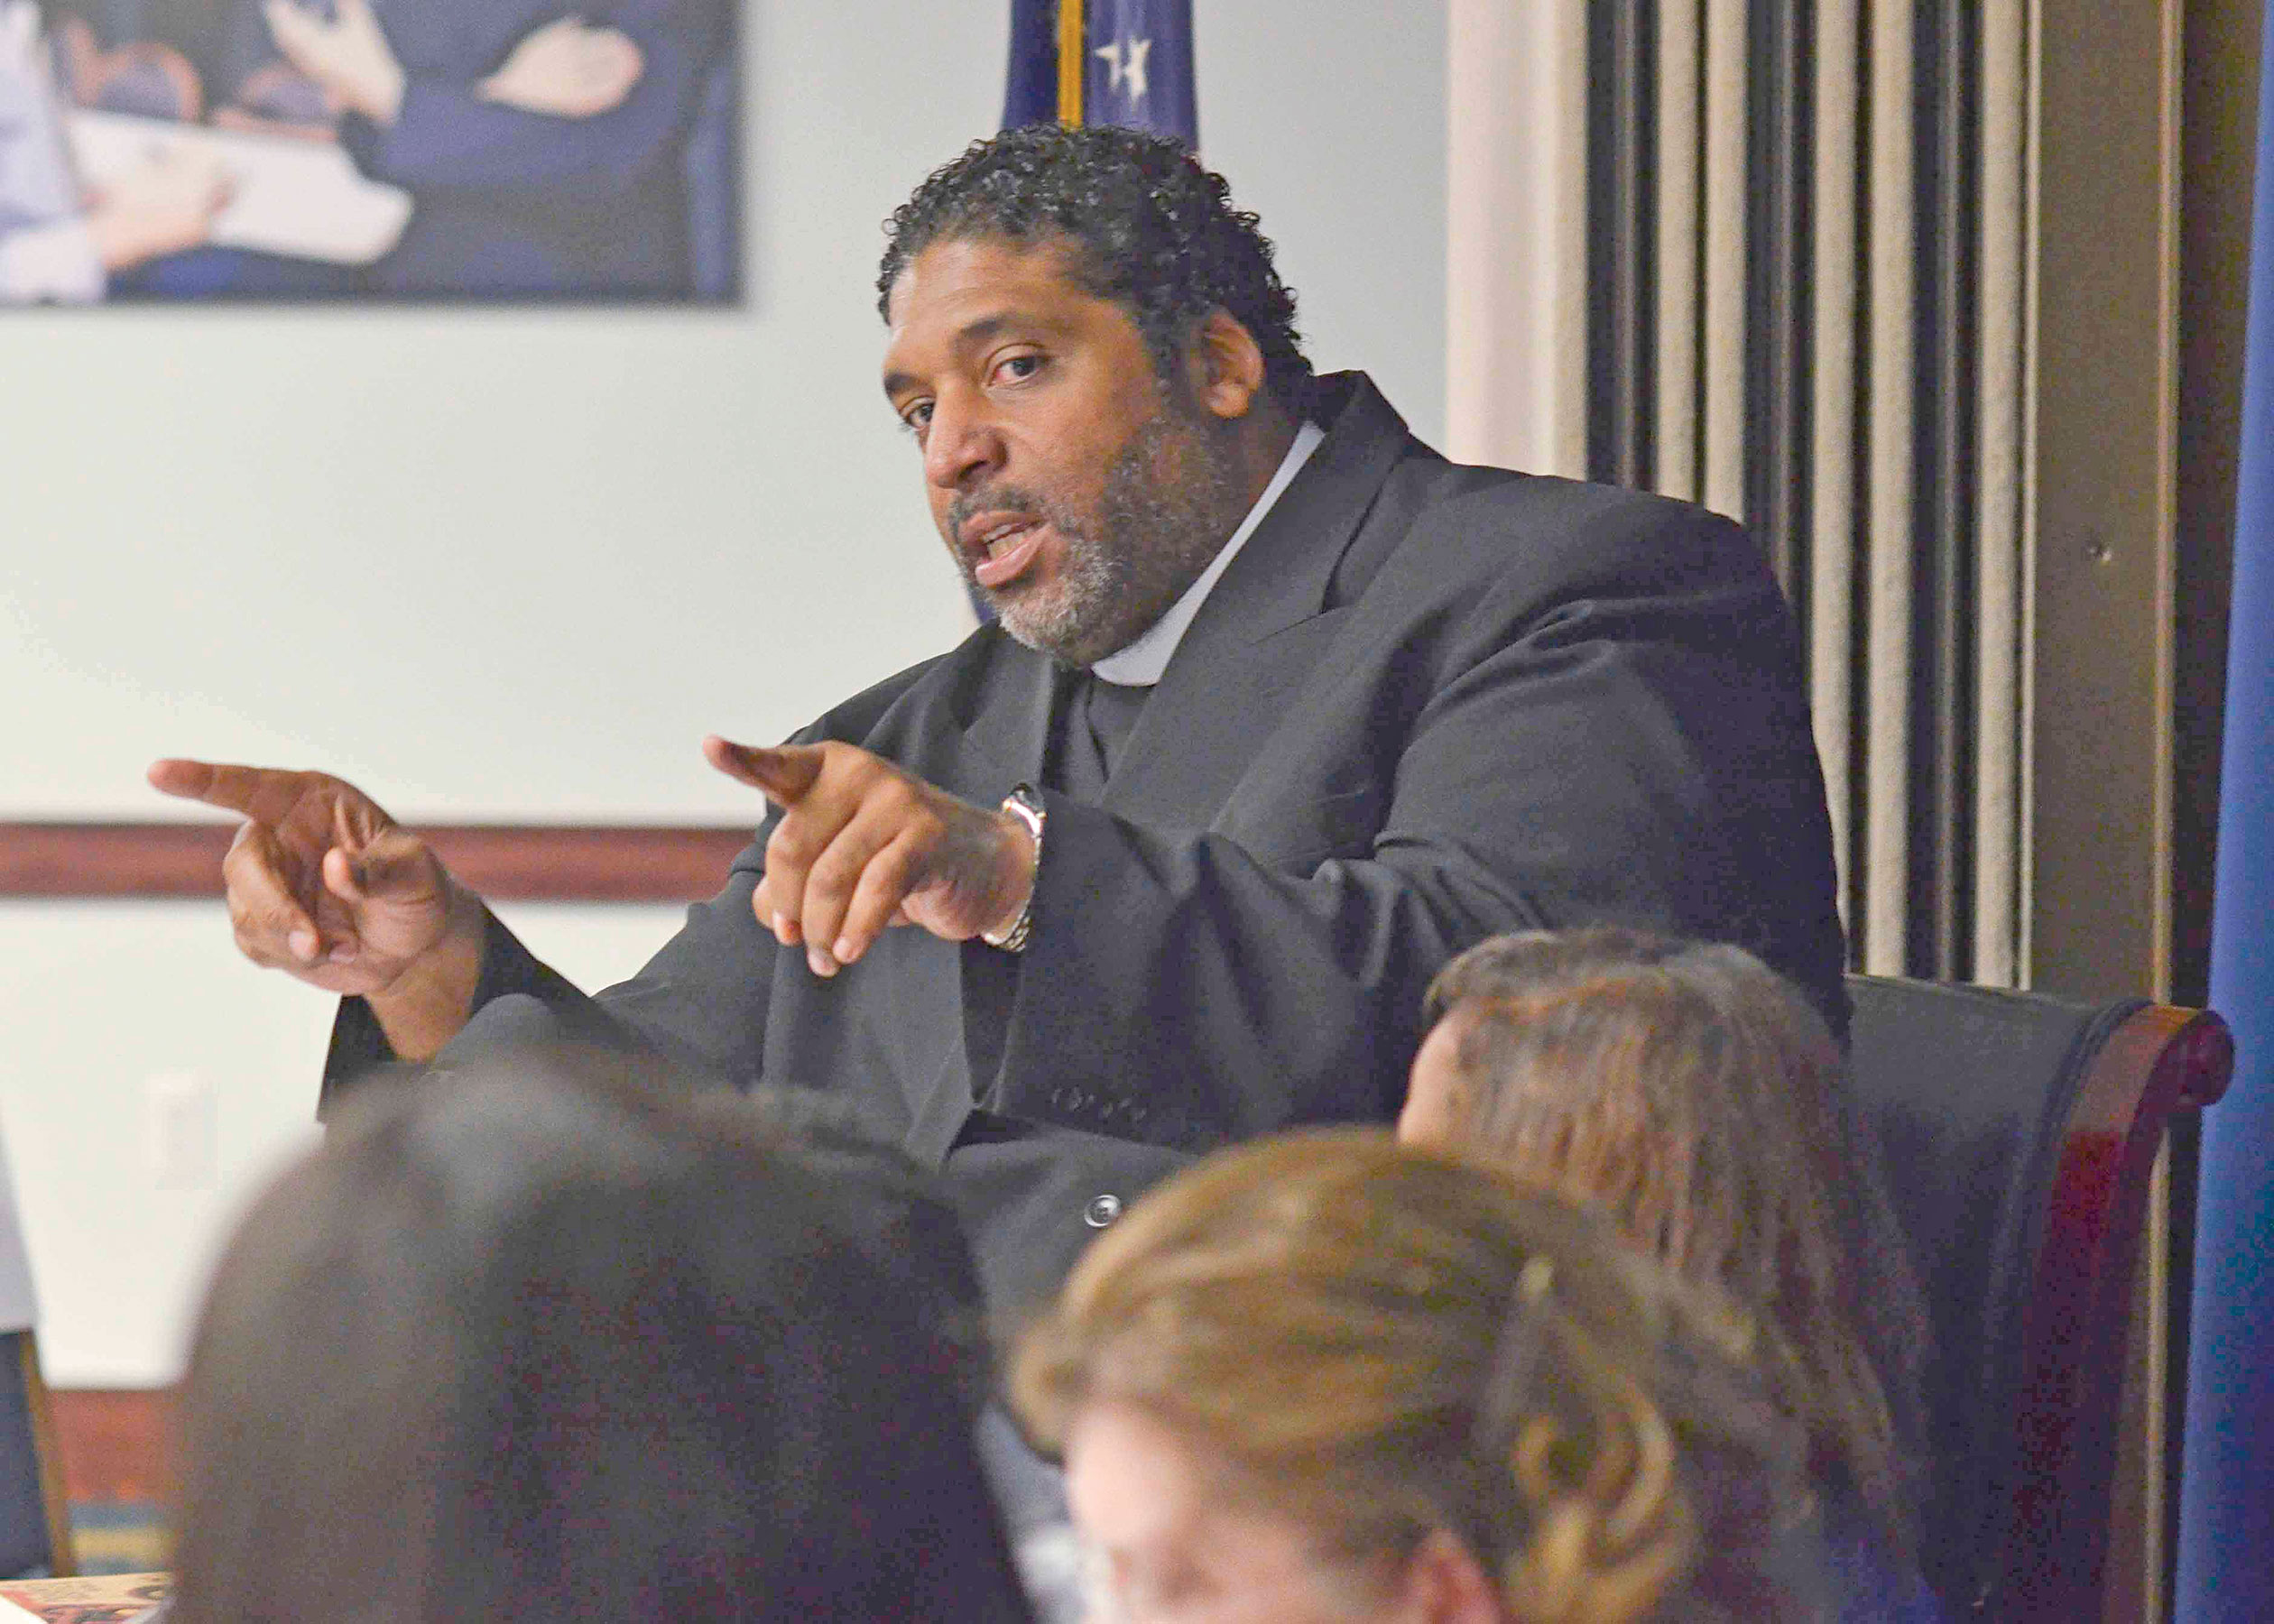 Bishop William J. Barber II says that we need a movement rooted in the moral forces that have demonstrated a capacity to change America. Photo courtesy of Freddie Allen/AMG/NNPA